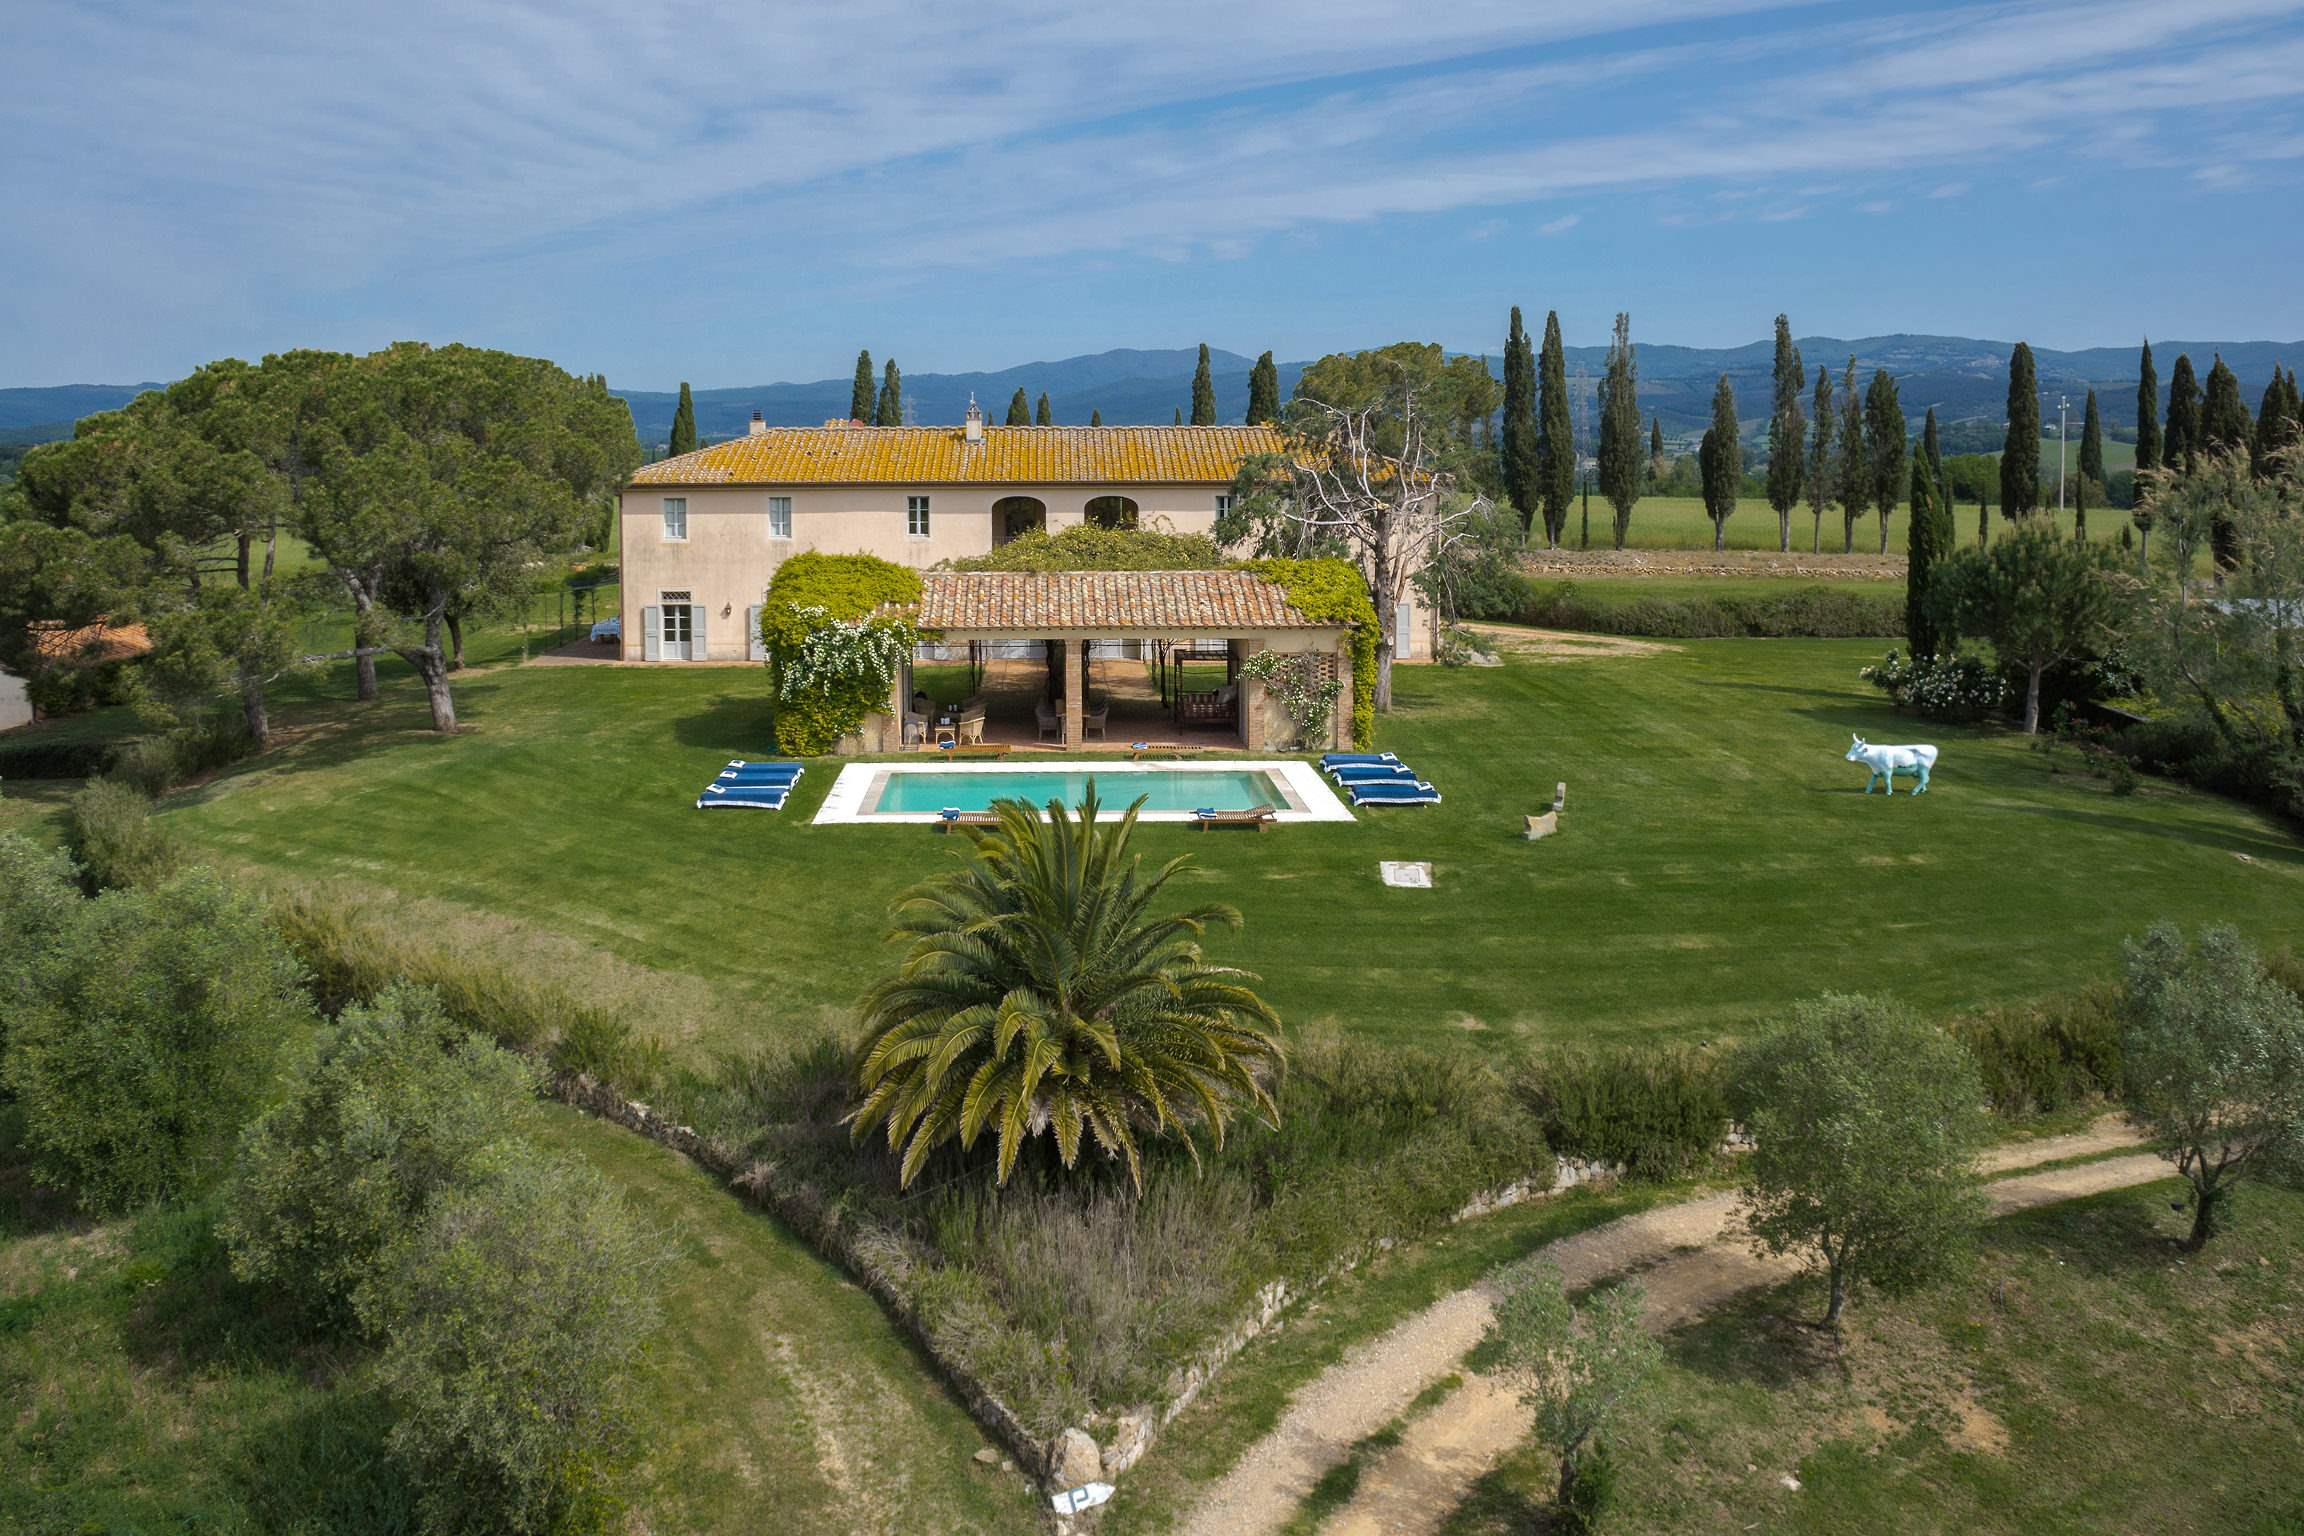 Villa Maremma 2, 9 bedroom villa in South Tuscany - Maremma, Tuscany Photo #1